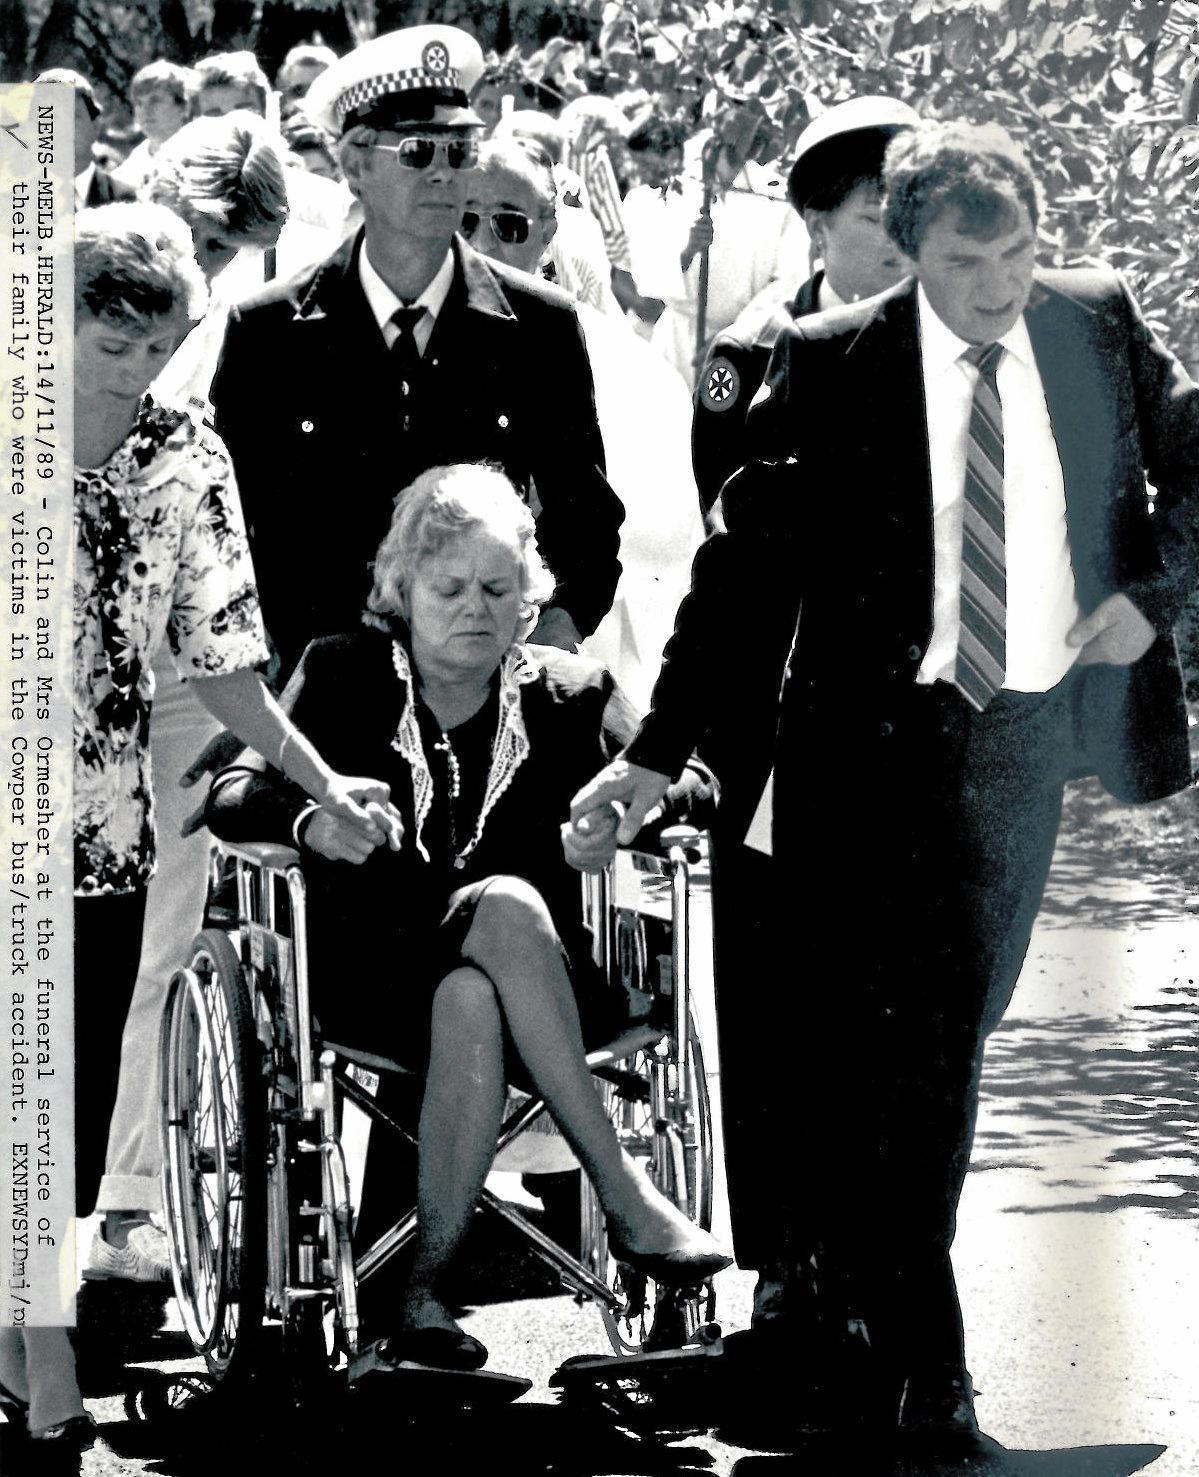 Colin & Angela Ormesher at the funeral service for family members who were killed in the Grafton Bus Crash Picture taken 30/10/1989